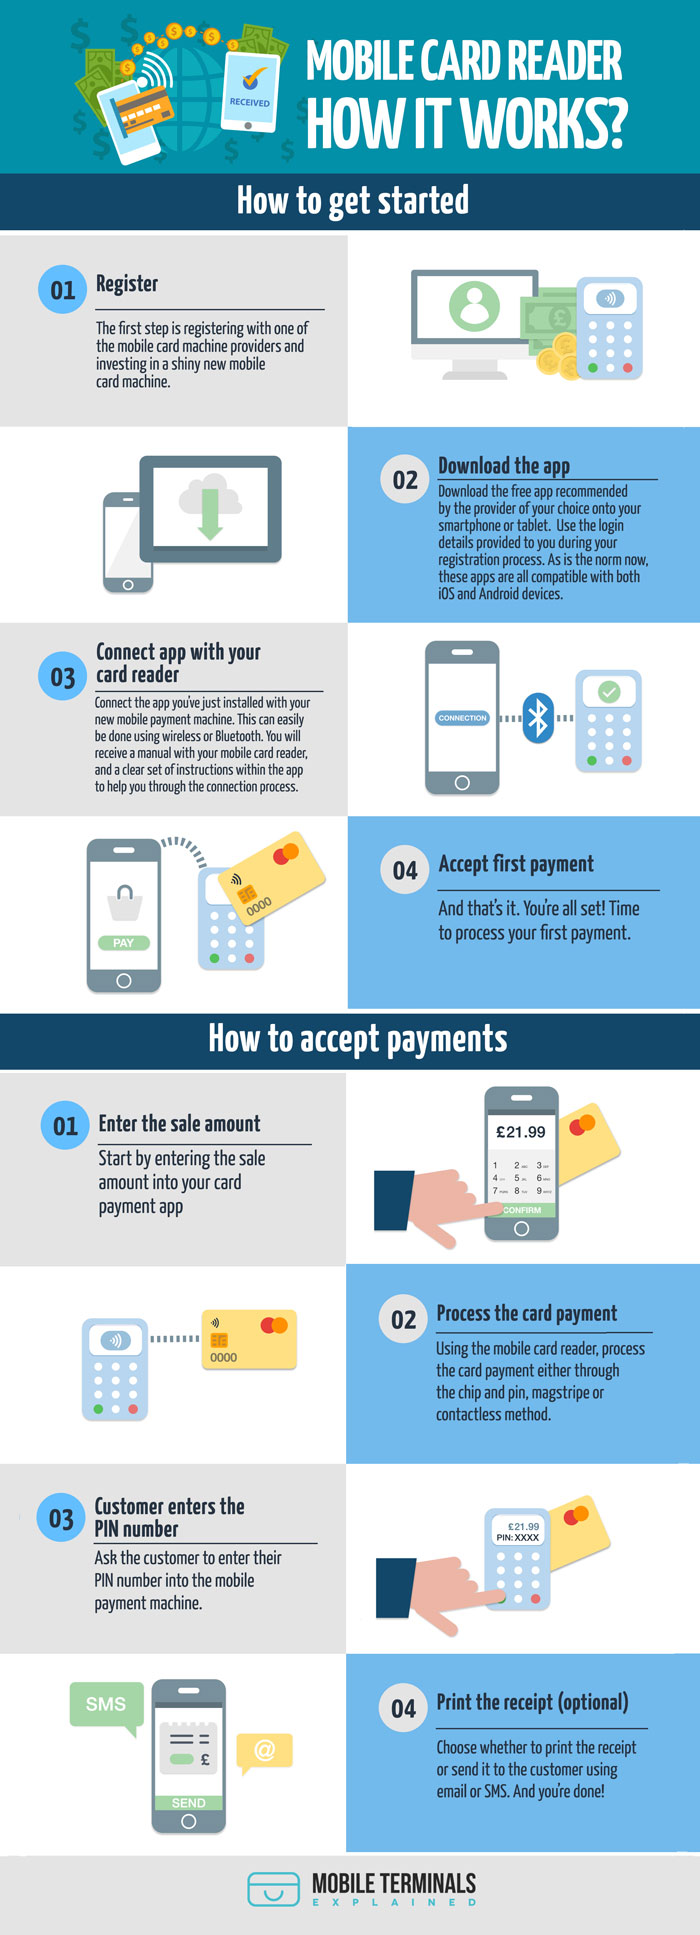 mobile card reader infographic